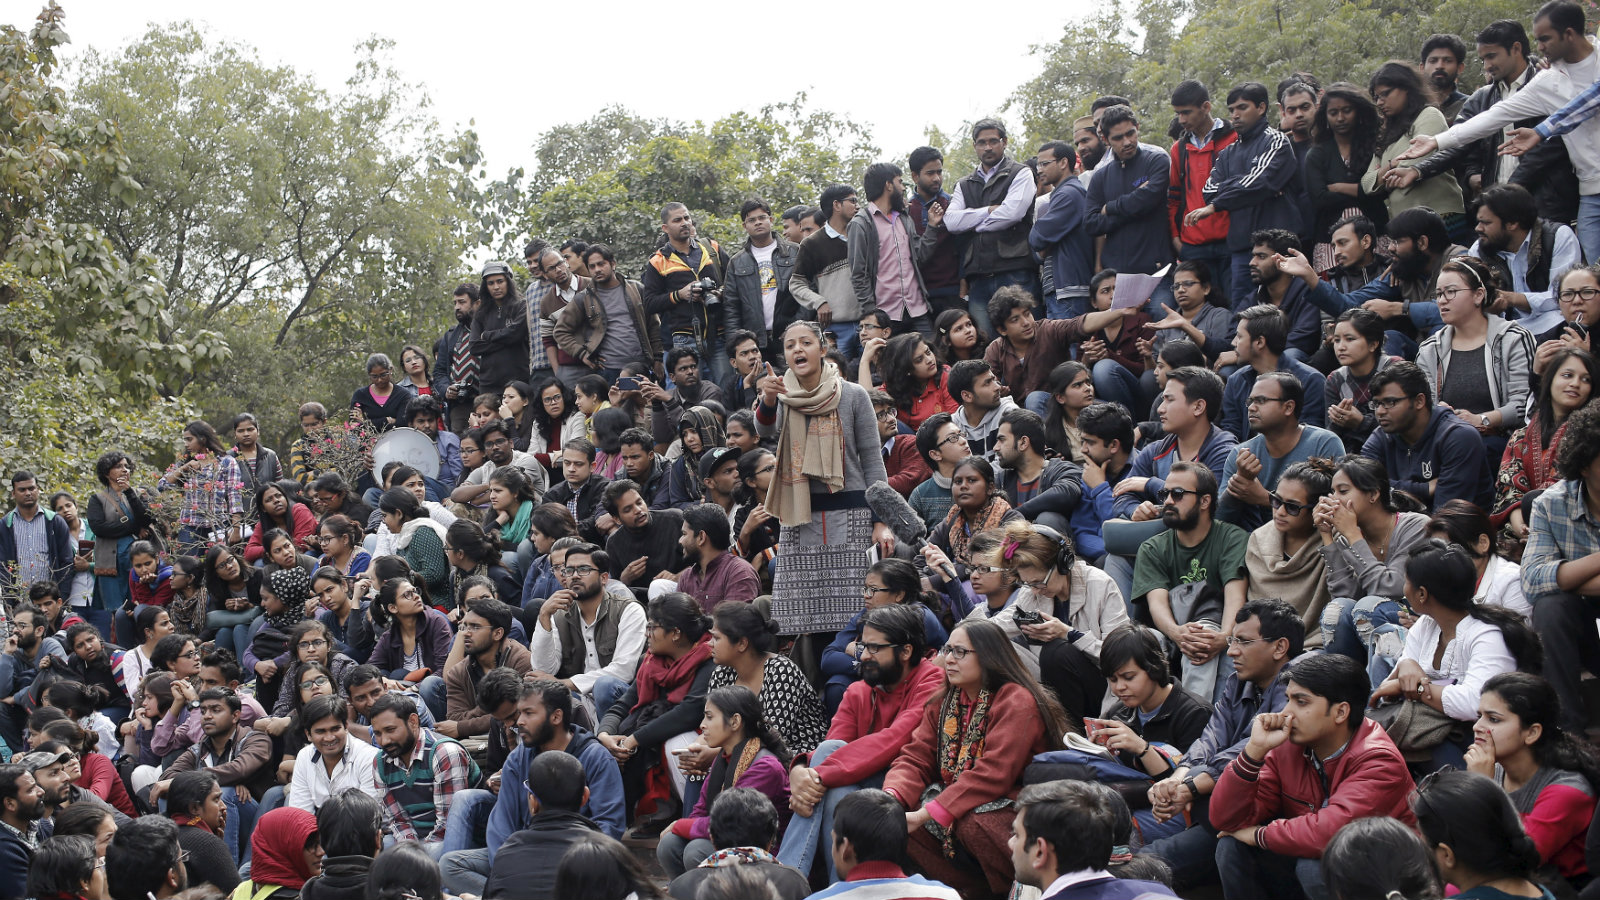 Students of Jawaharlal Nehru University (JNU) attend a protest inside the university campus in New Delhi, India, February 15, 2016. India's biggest nationwide student protests in a quarter of a century spread across campuses on Monday after the arrest of a student accused of sedition, in the latest battle with Prime Minister Narendra Modi's government over freedom of expression. Outrage over the arrest of the left-wing student leader, who had organized a rally to mark the anniversary of the execution of a Kashmiri separatist, has led to demonstrations in at least 18 universities.